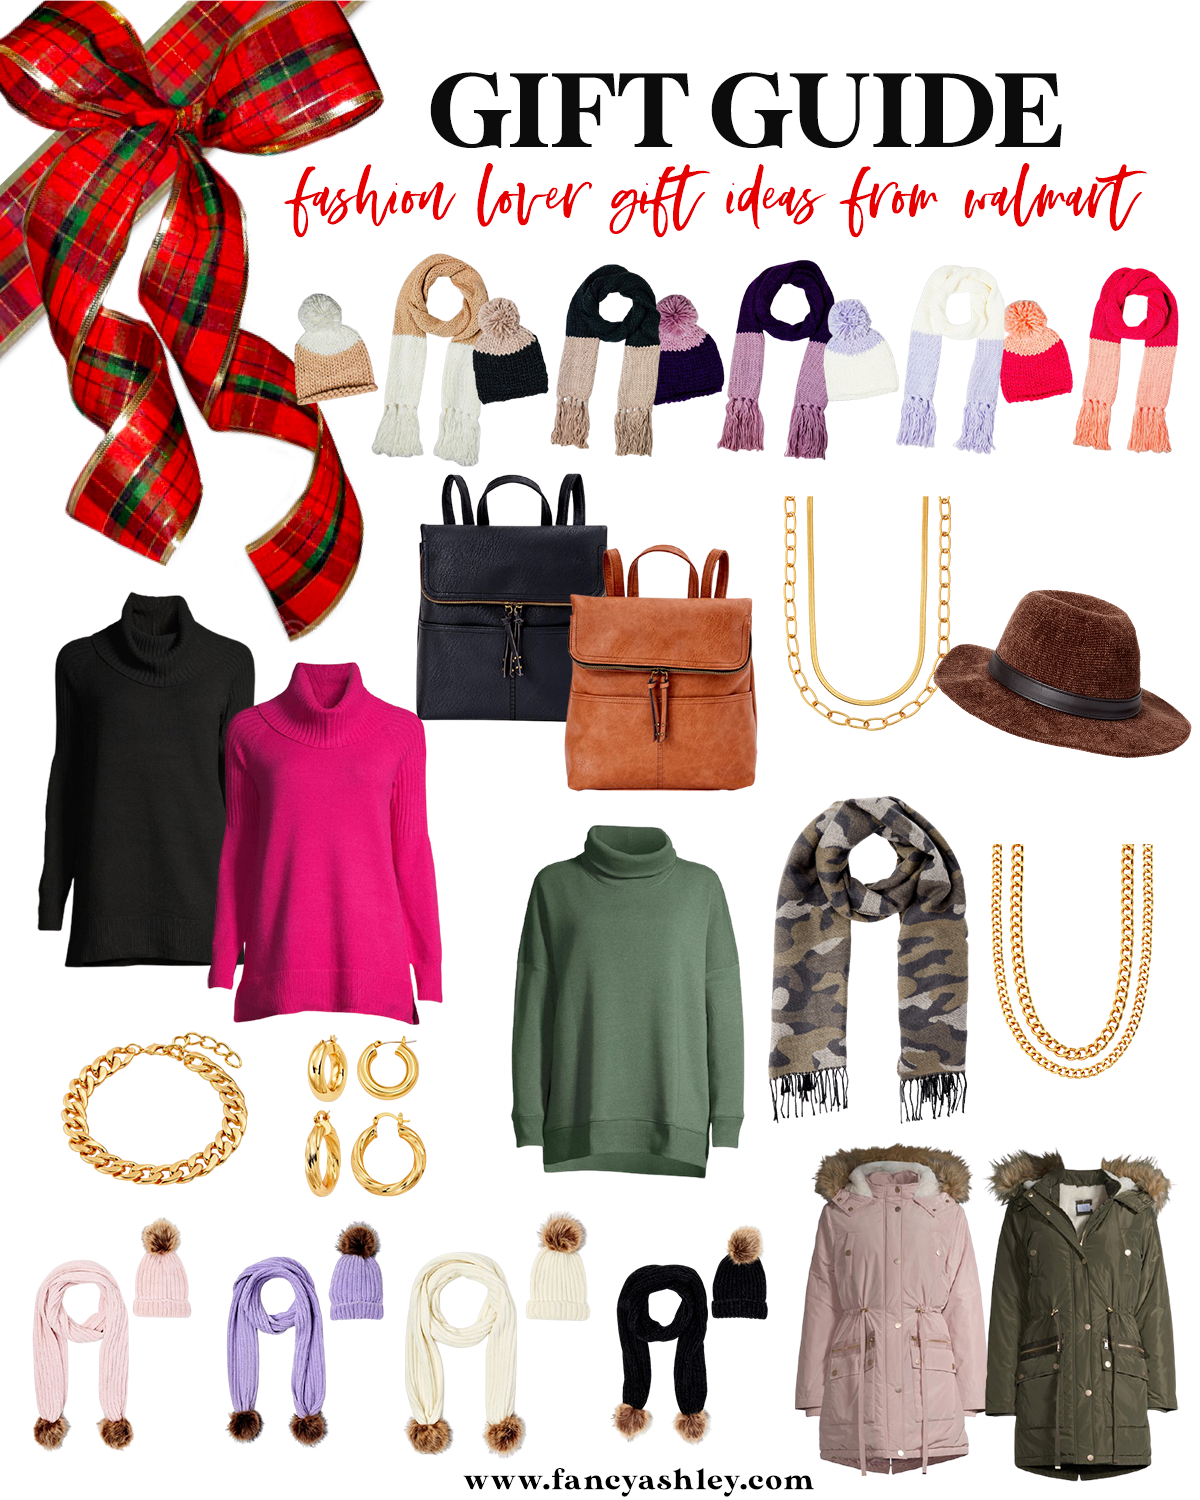 Walmart Gift Ideas by popular Houston life and style blog, Fancy Ashley: collage image of a turtle neck sweaters, camo scarf, fedora hat, suede and faux leather backpacks, coats, matching scarf and beanie set, gold chain necklace, gold chain bracelet, and gold hoop earrings.